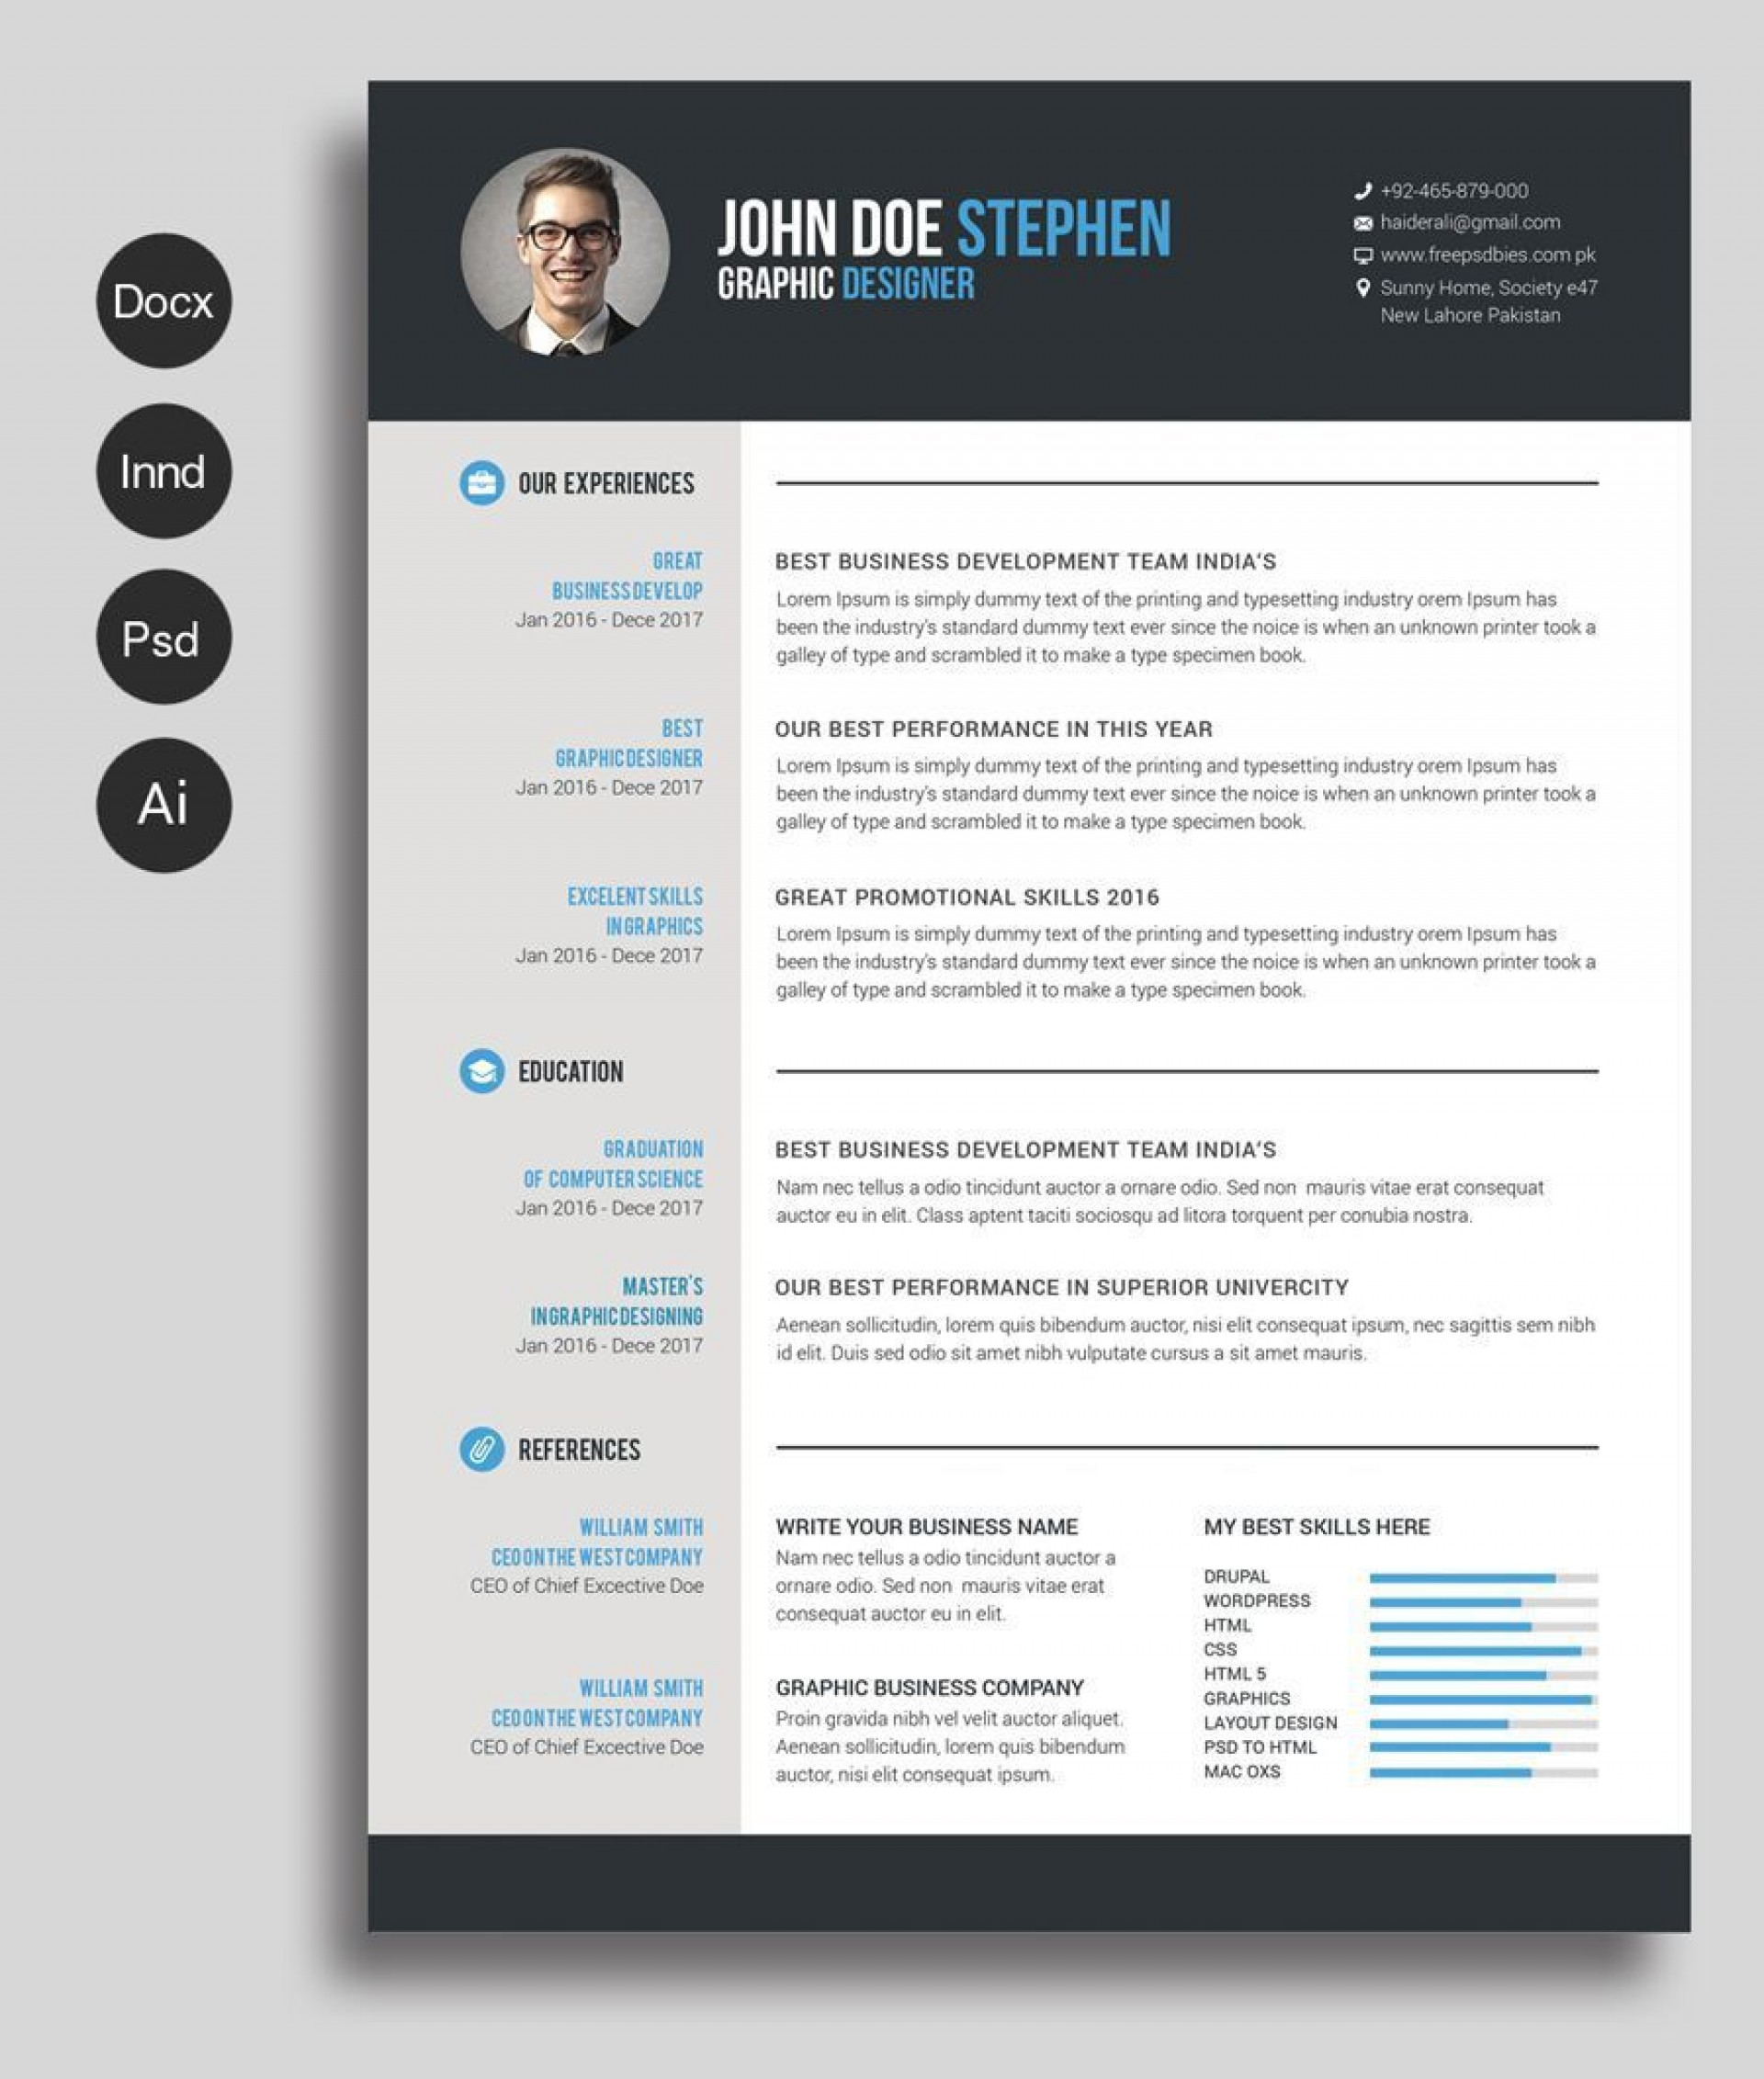 000 Impressive Download Resume Template Free Word High Definition  Attractive Microsoft Simple For Creative1920